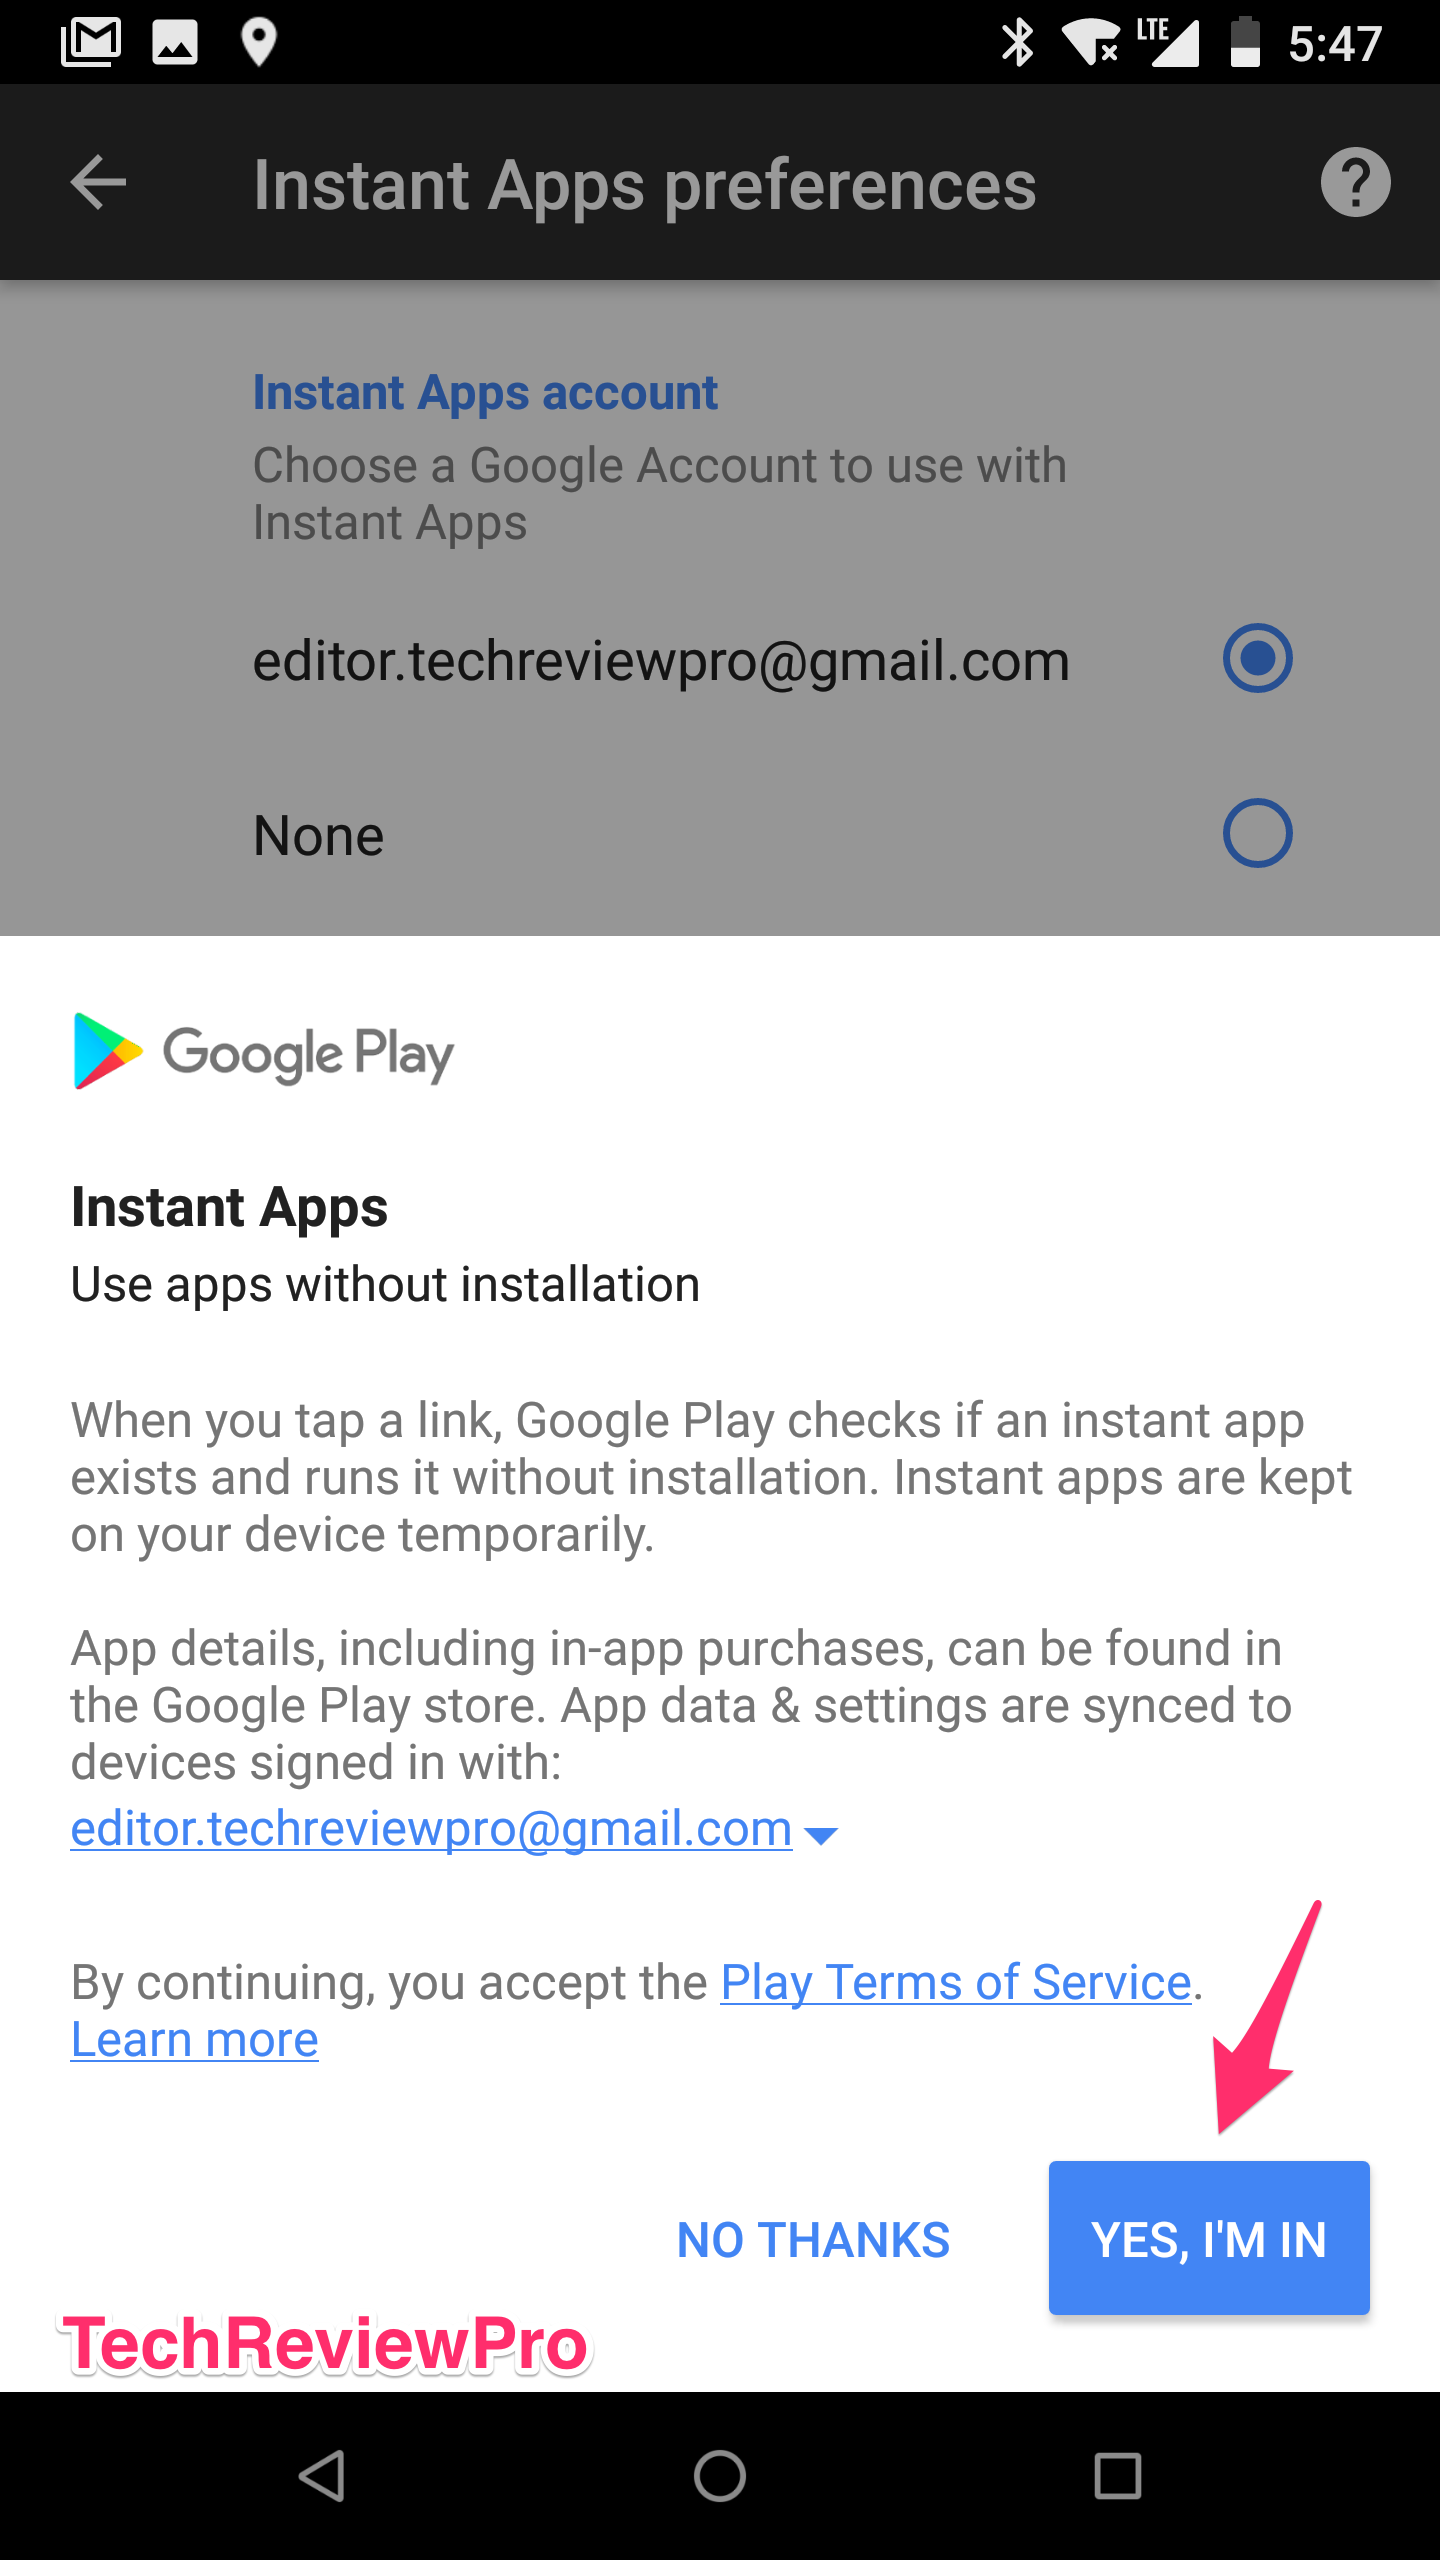 Google Instant Apps - Play Free Games without Downloading on Android